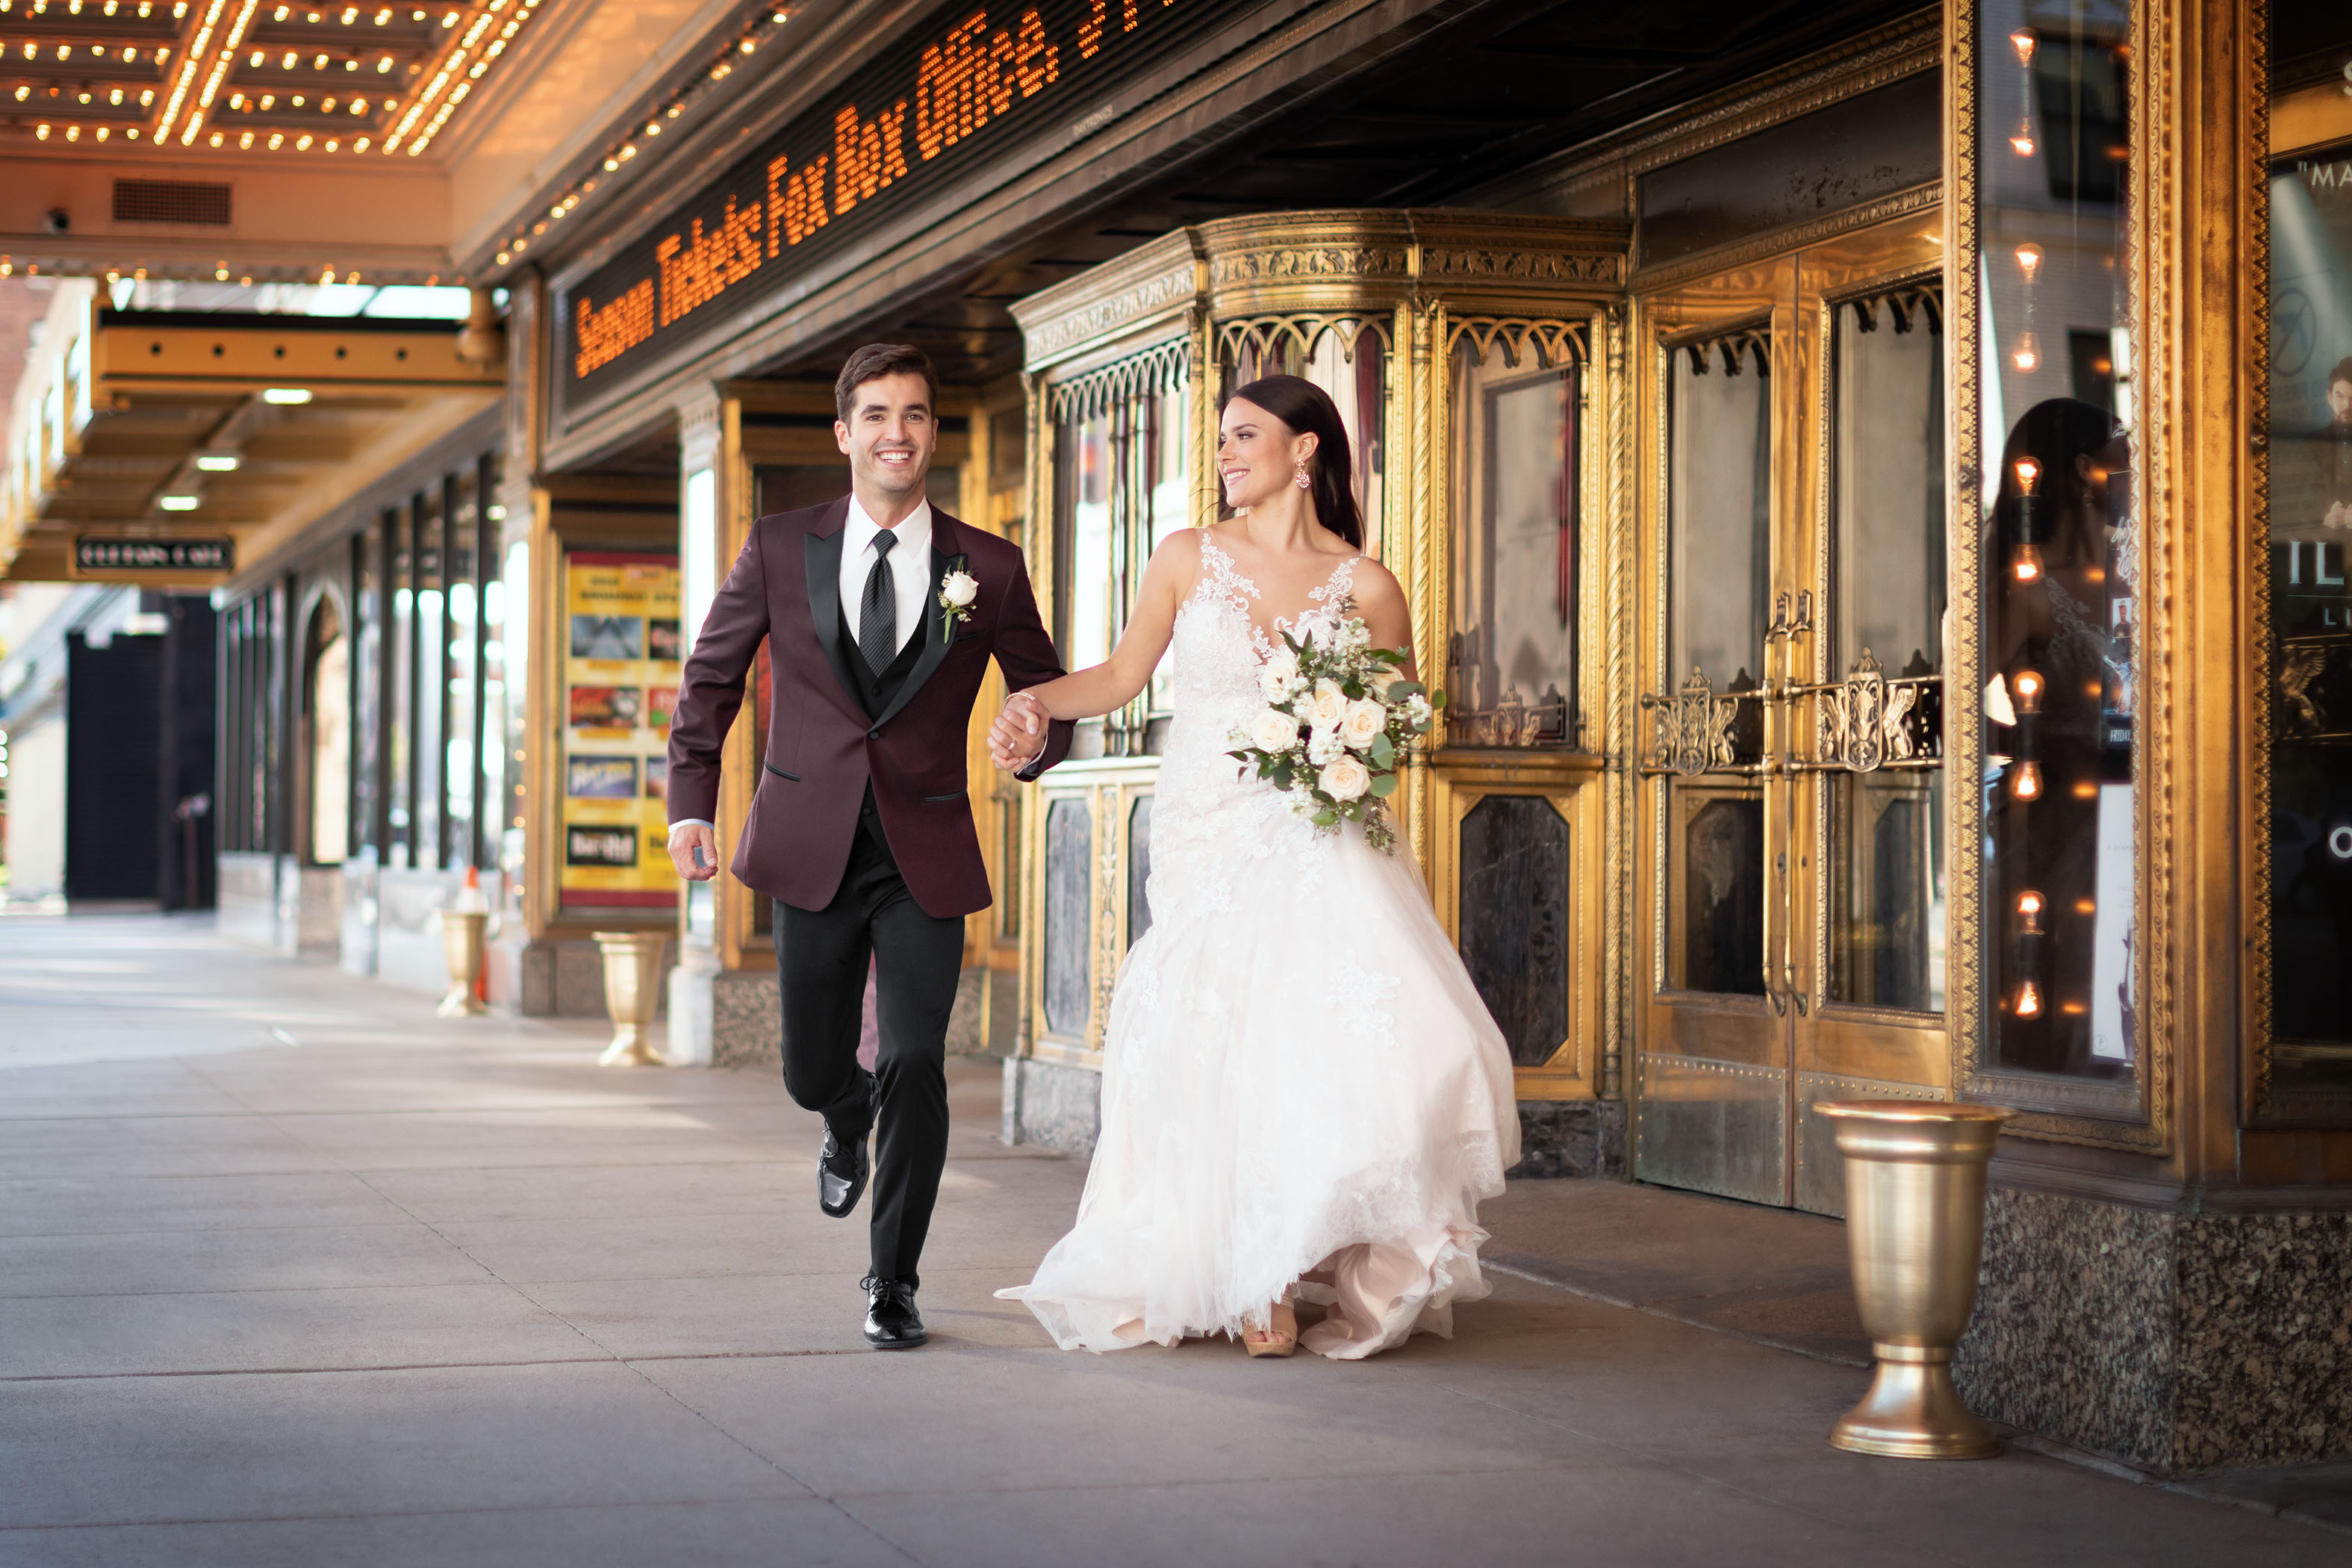 fall wedding colors -bride running with groom wearing burgundy jacket and black pants